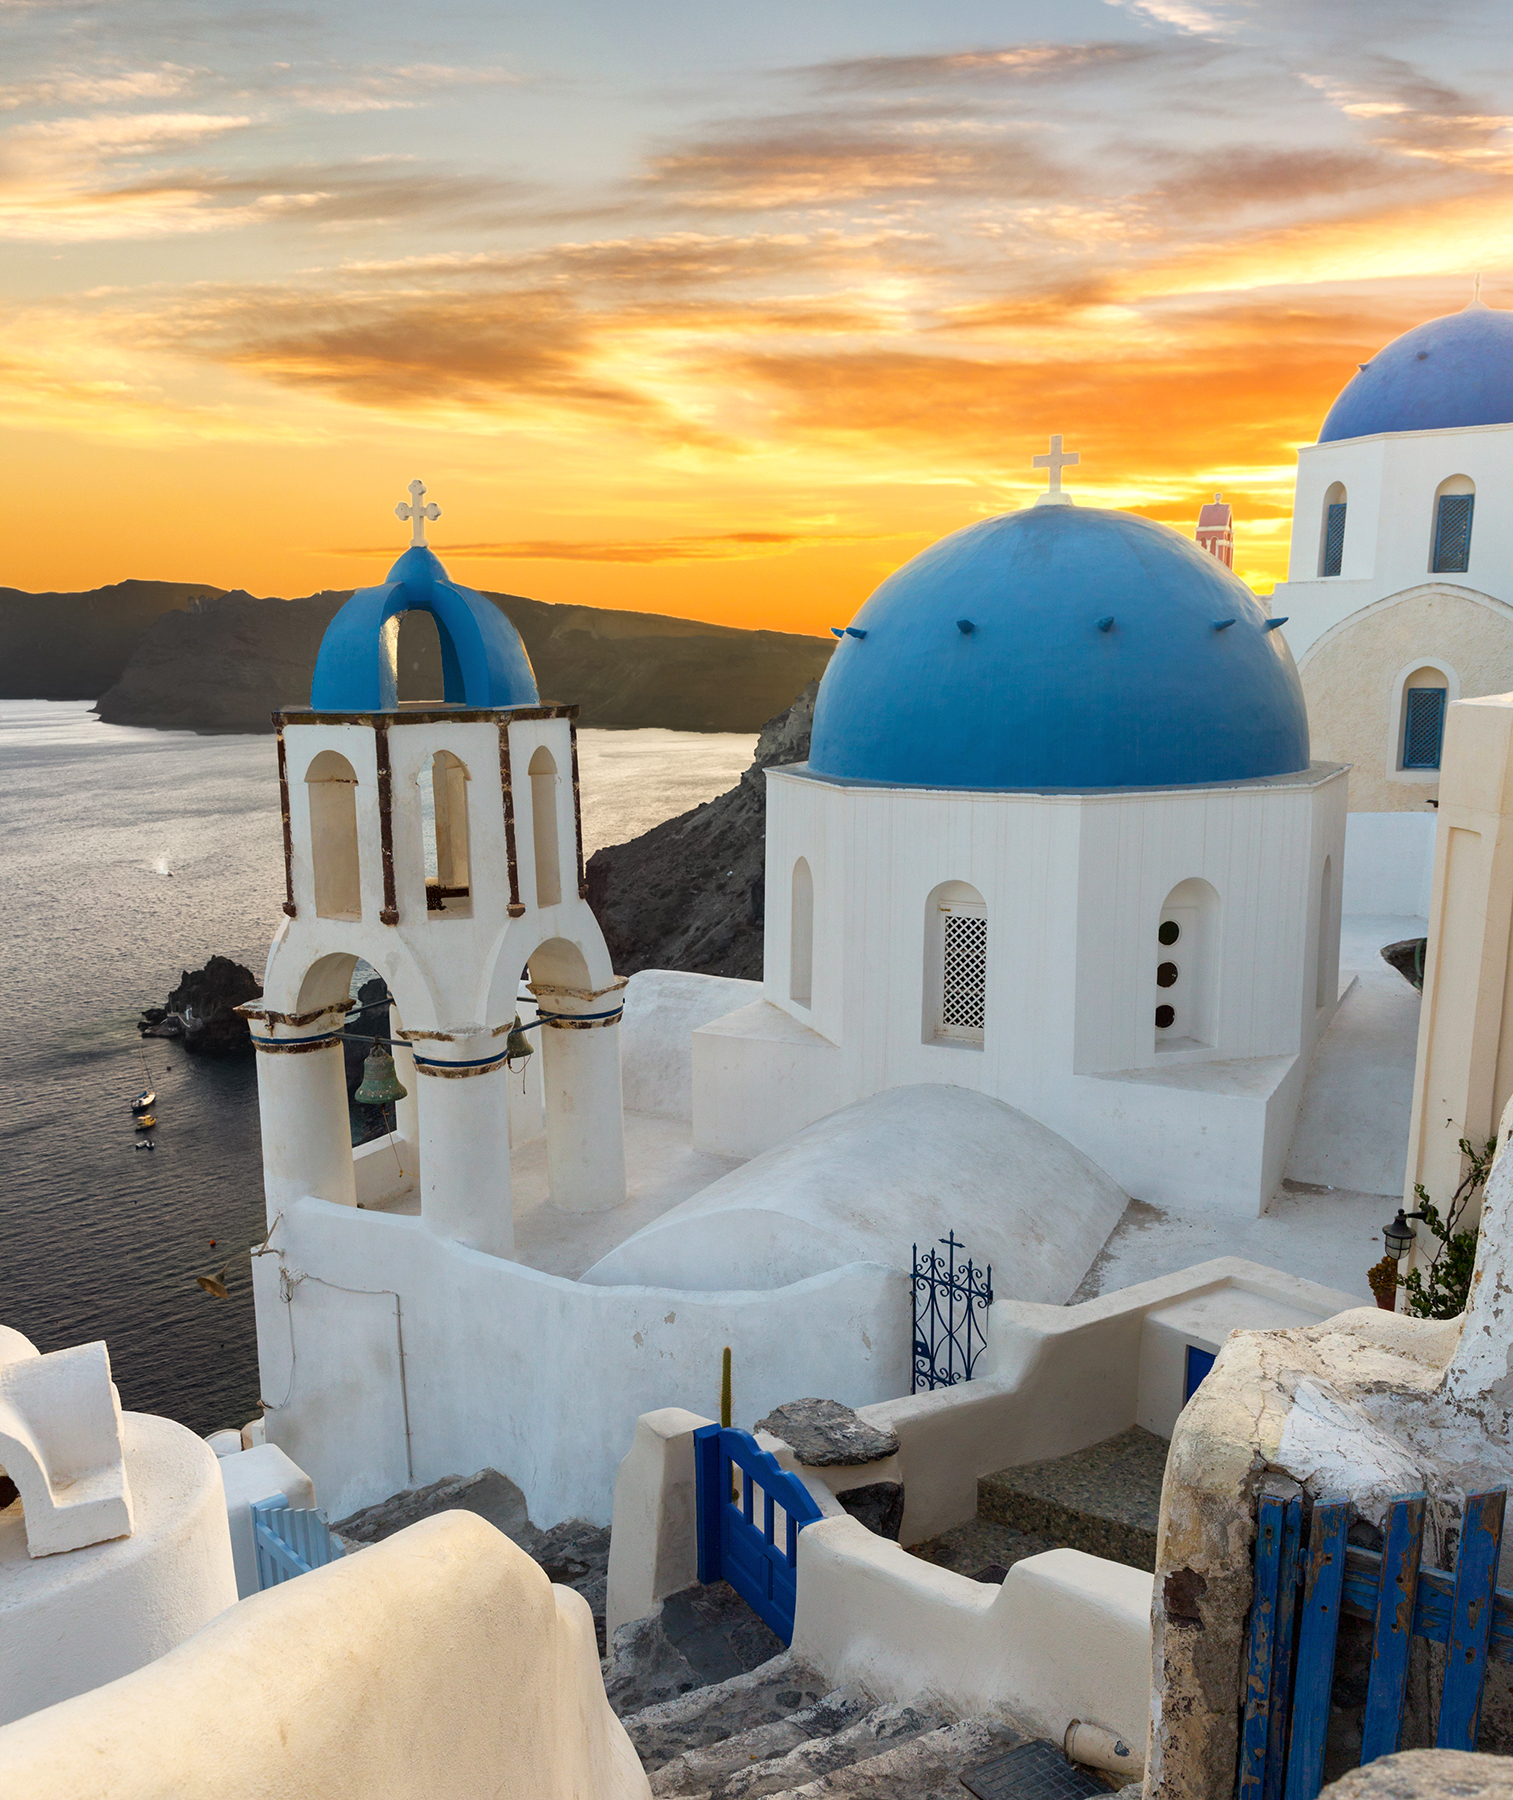 Fly to Greece With Emirates for $329 Round-trip